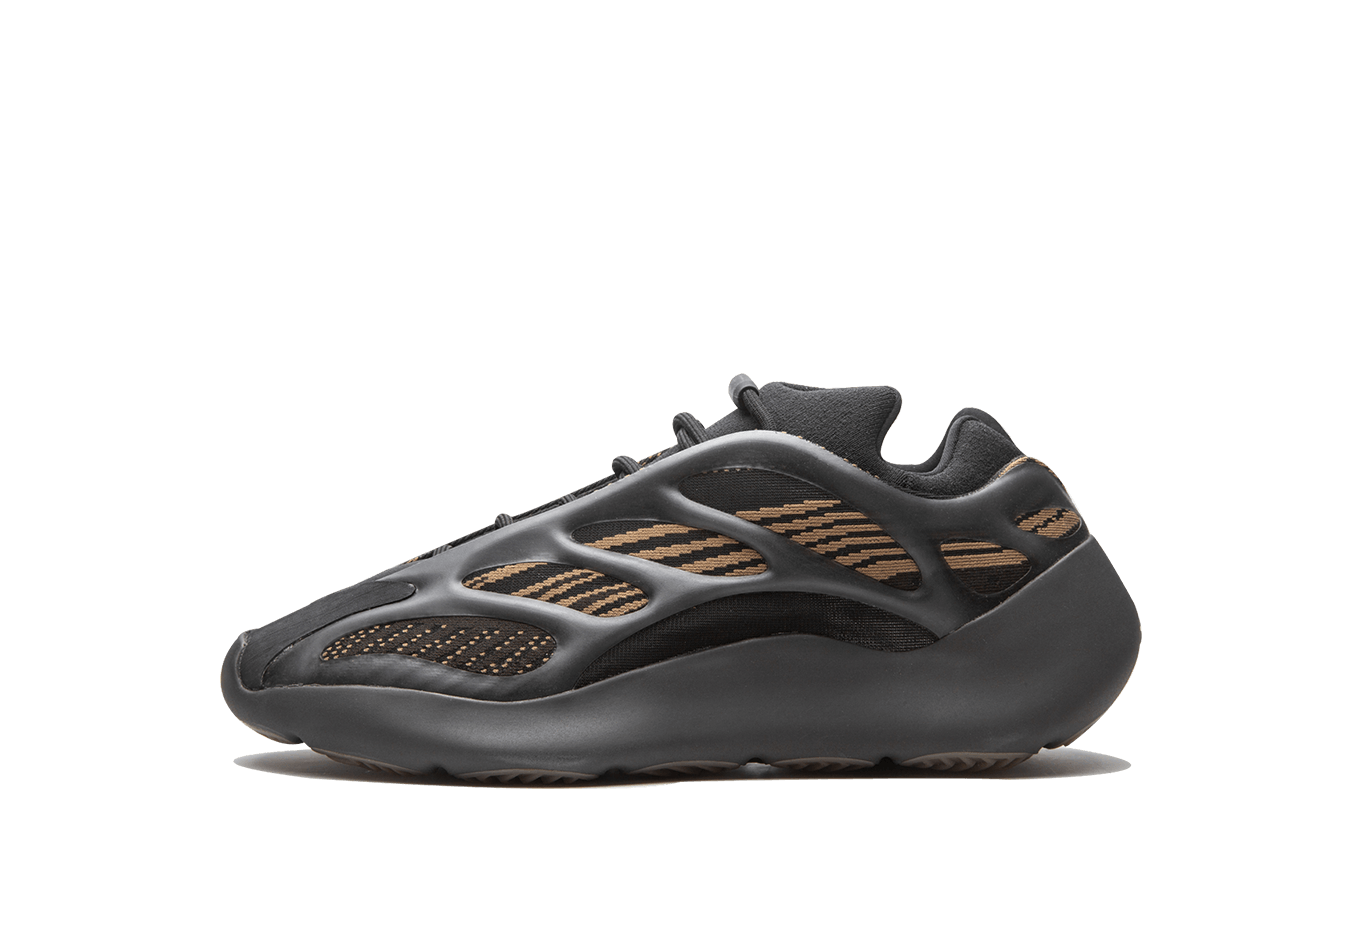 Buy New Adidas Yeezy Boost 700  Clay Brown